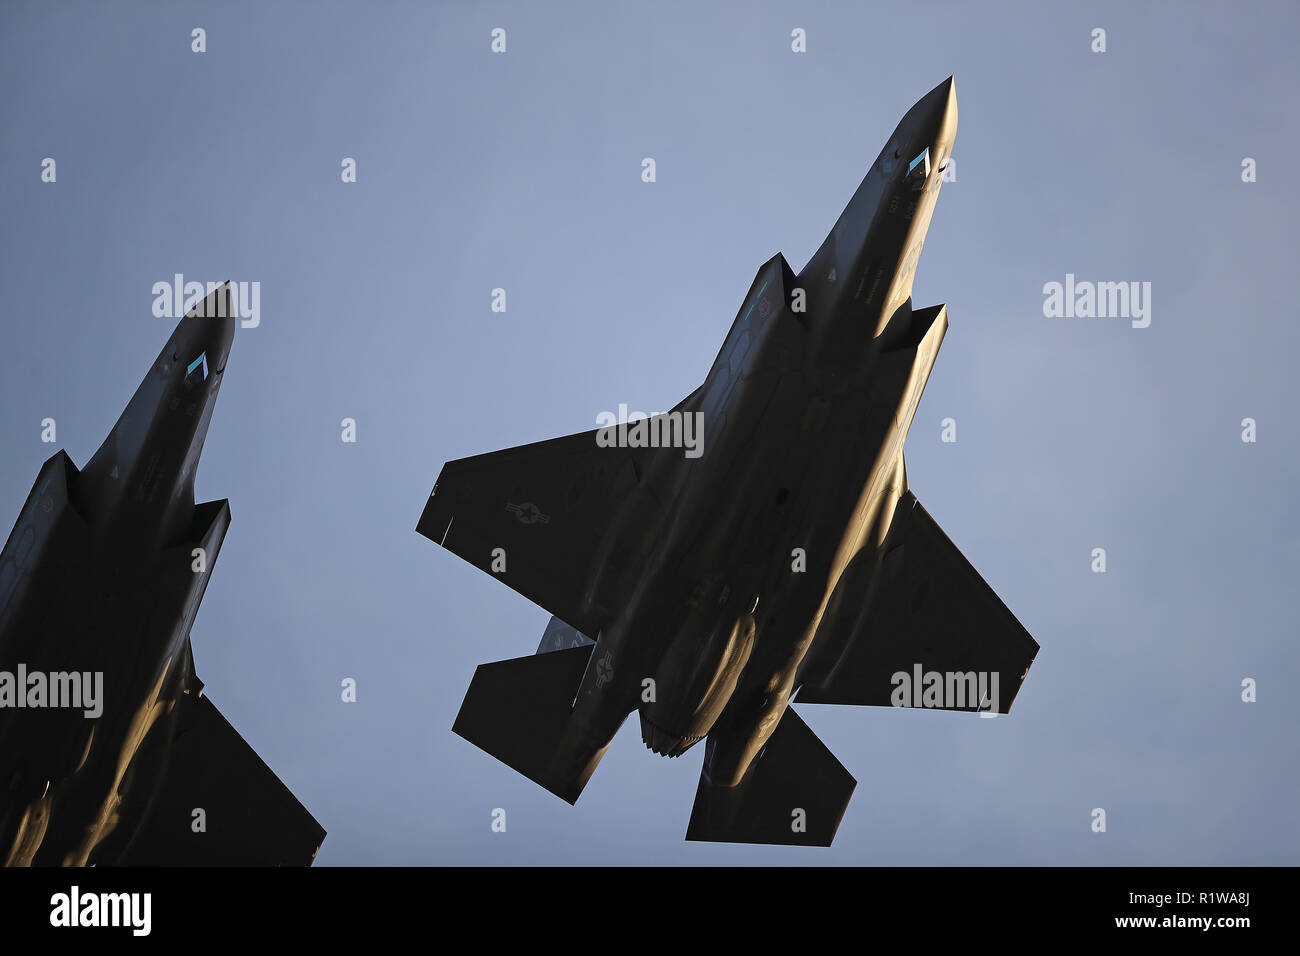 F-35A jets from the 31st Test evaluation squadron at Edwards Air Force Base Stock Photo